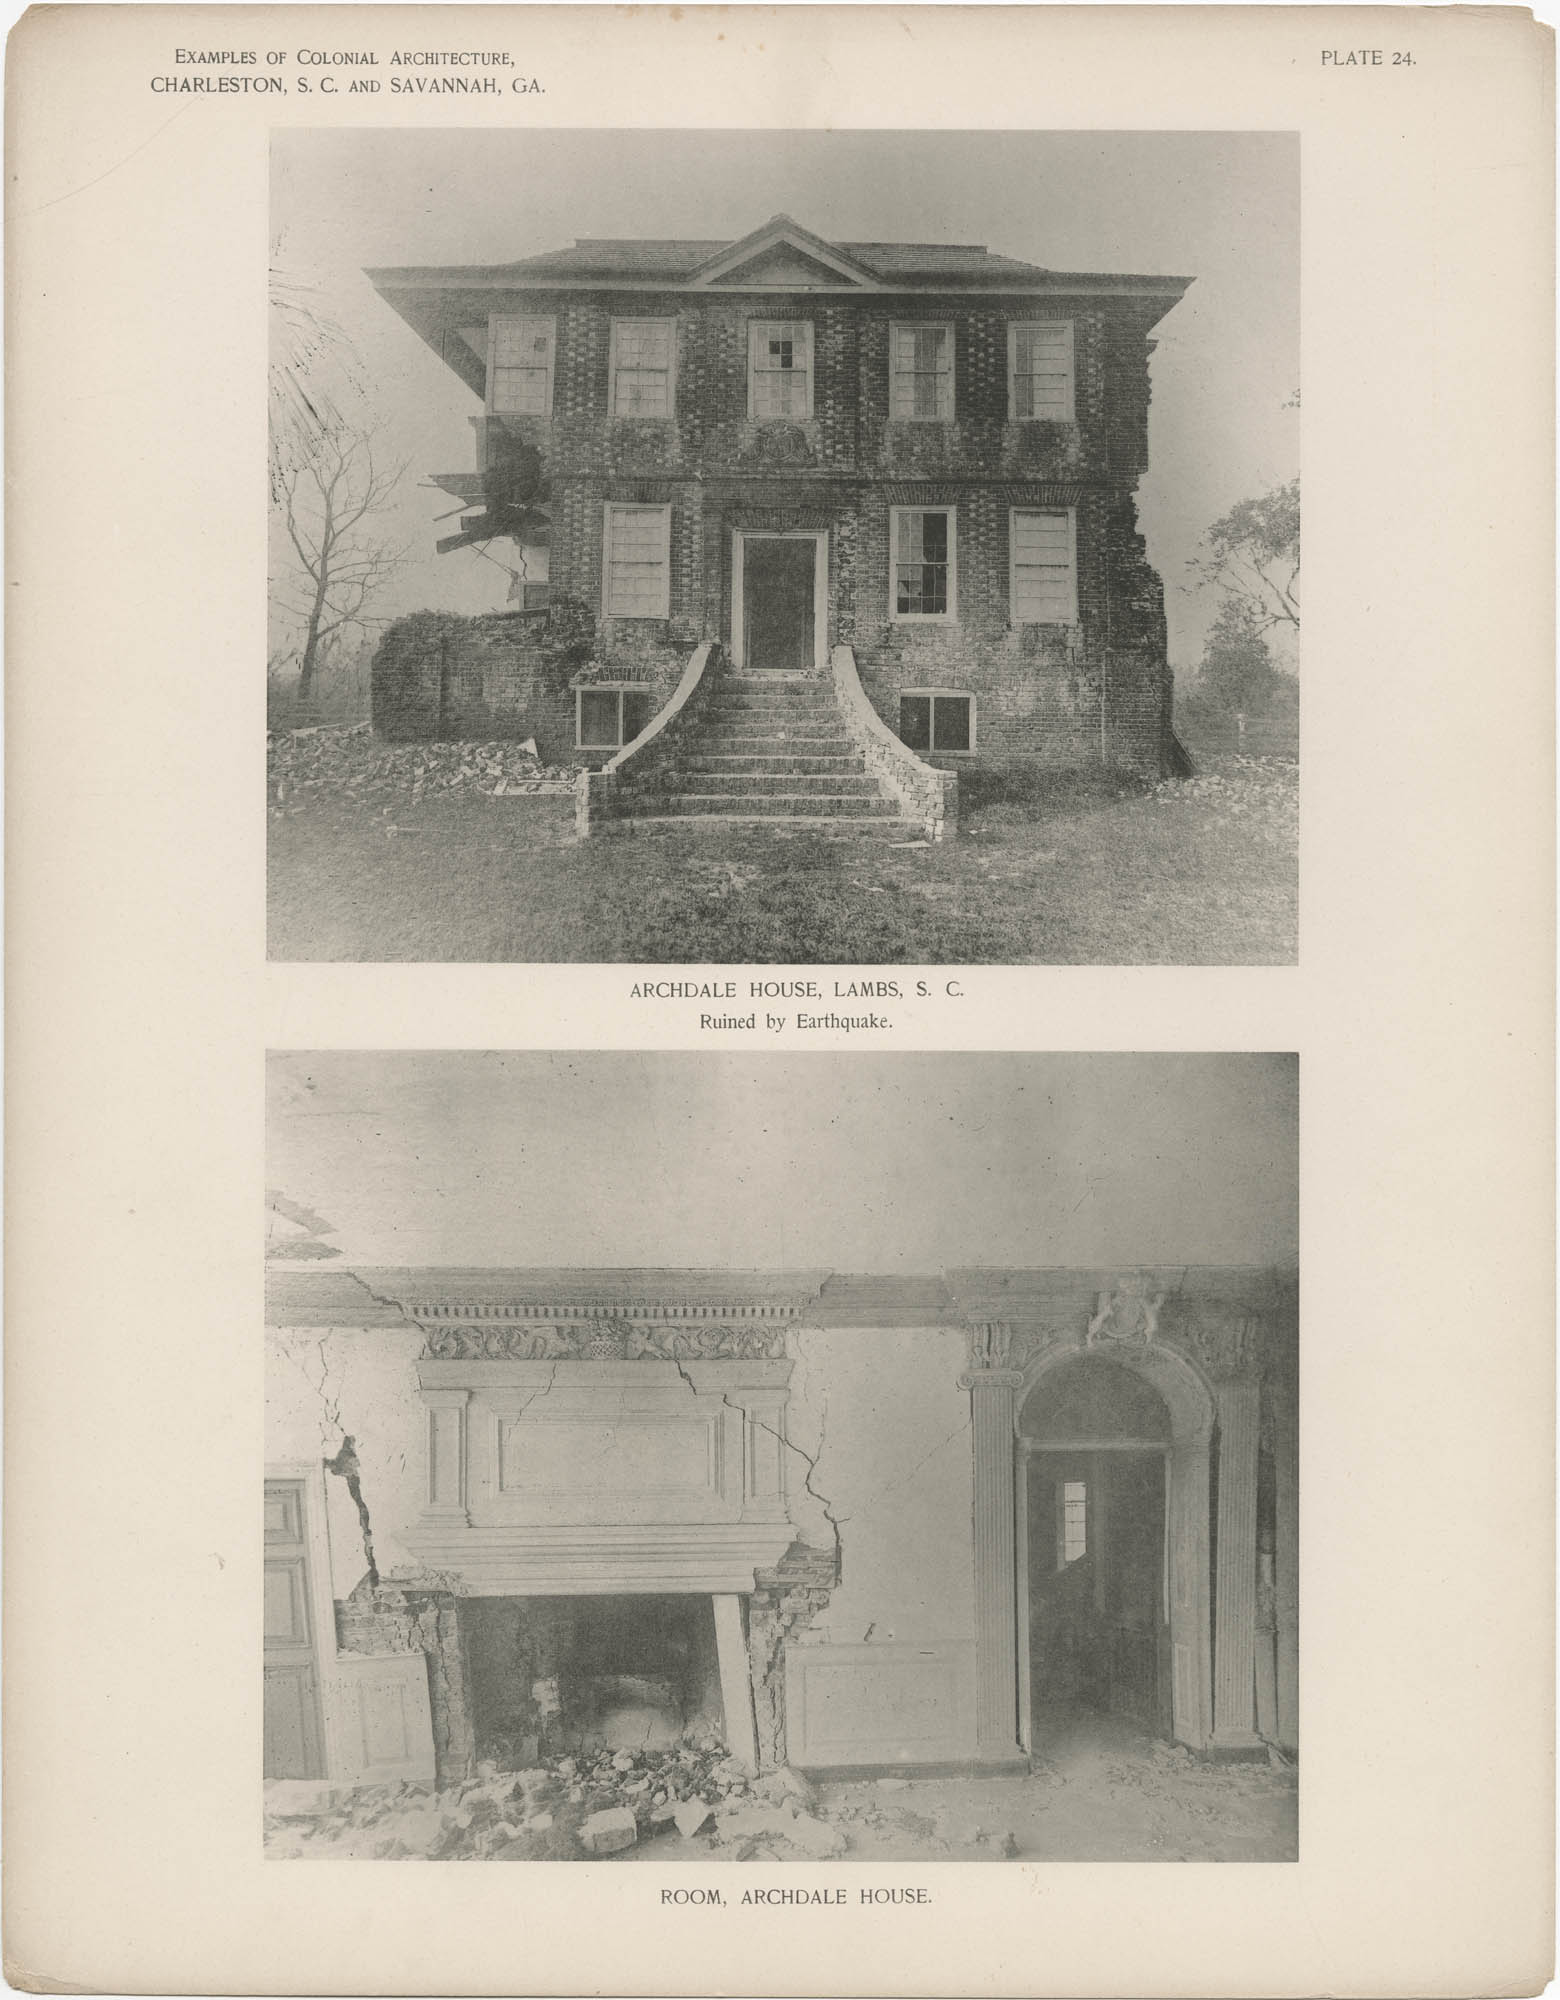 Plate 24: Archdale House, Lambs, S.C., Ruined by Earthquake. Room, Archdale House